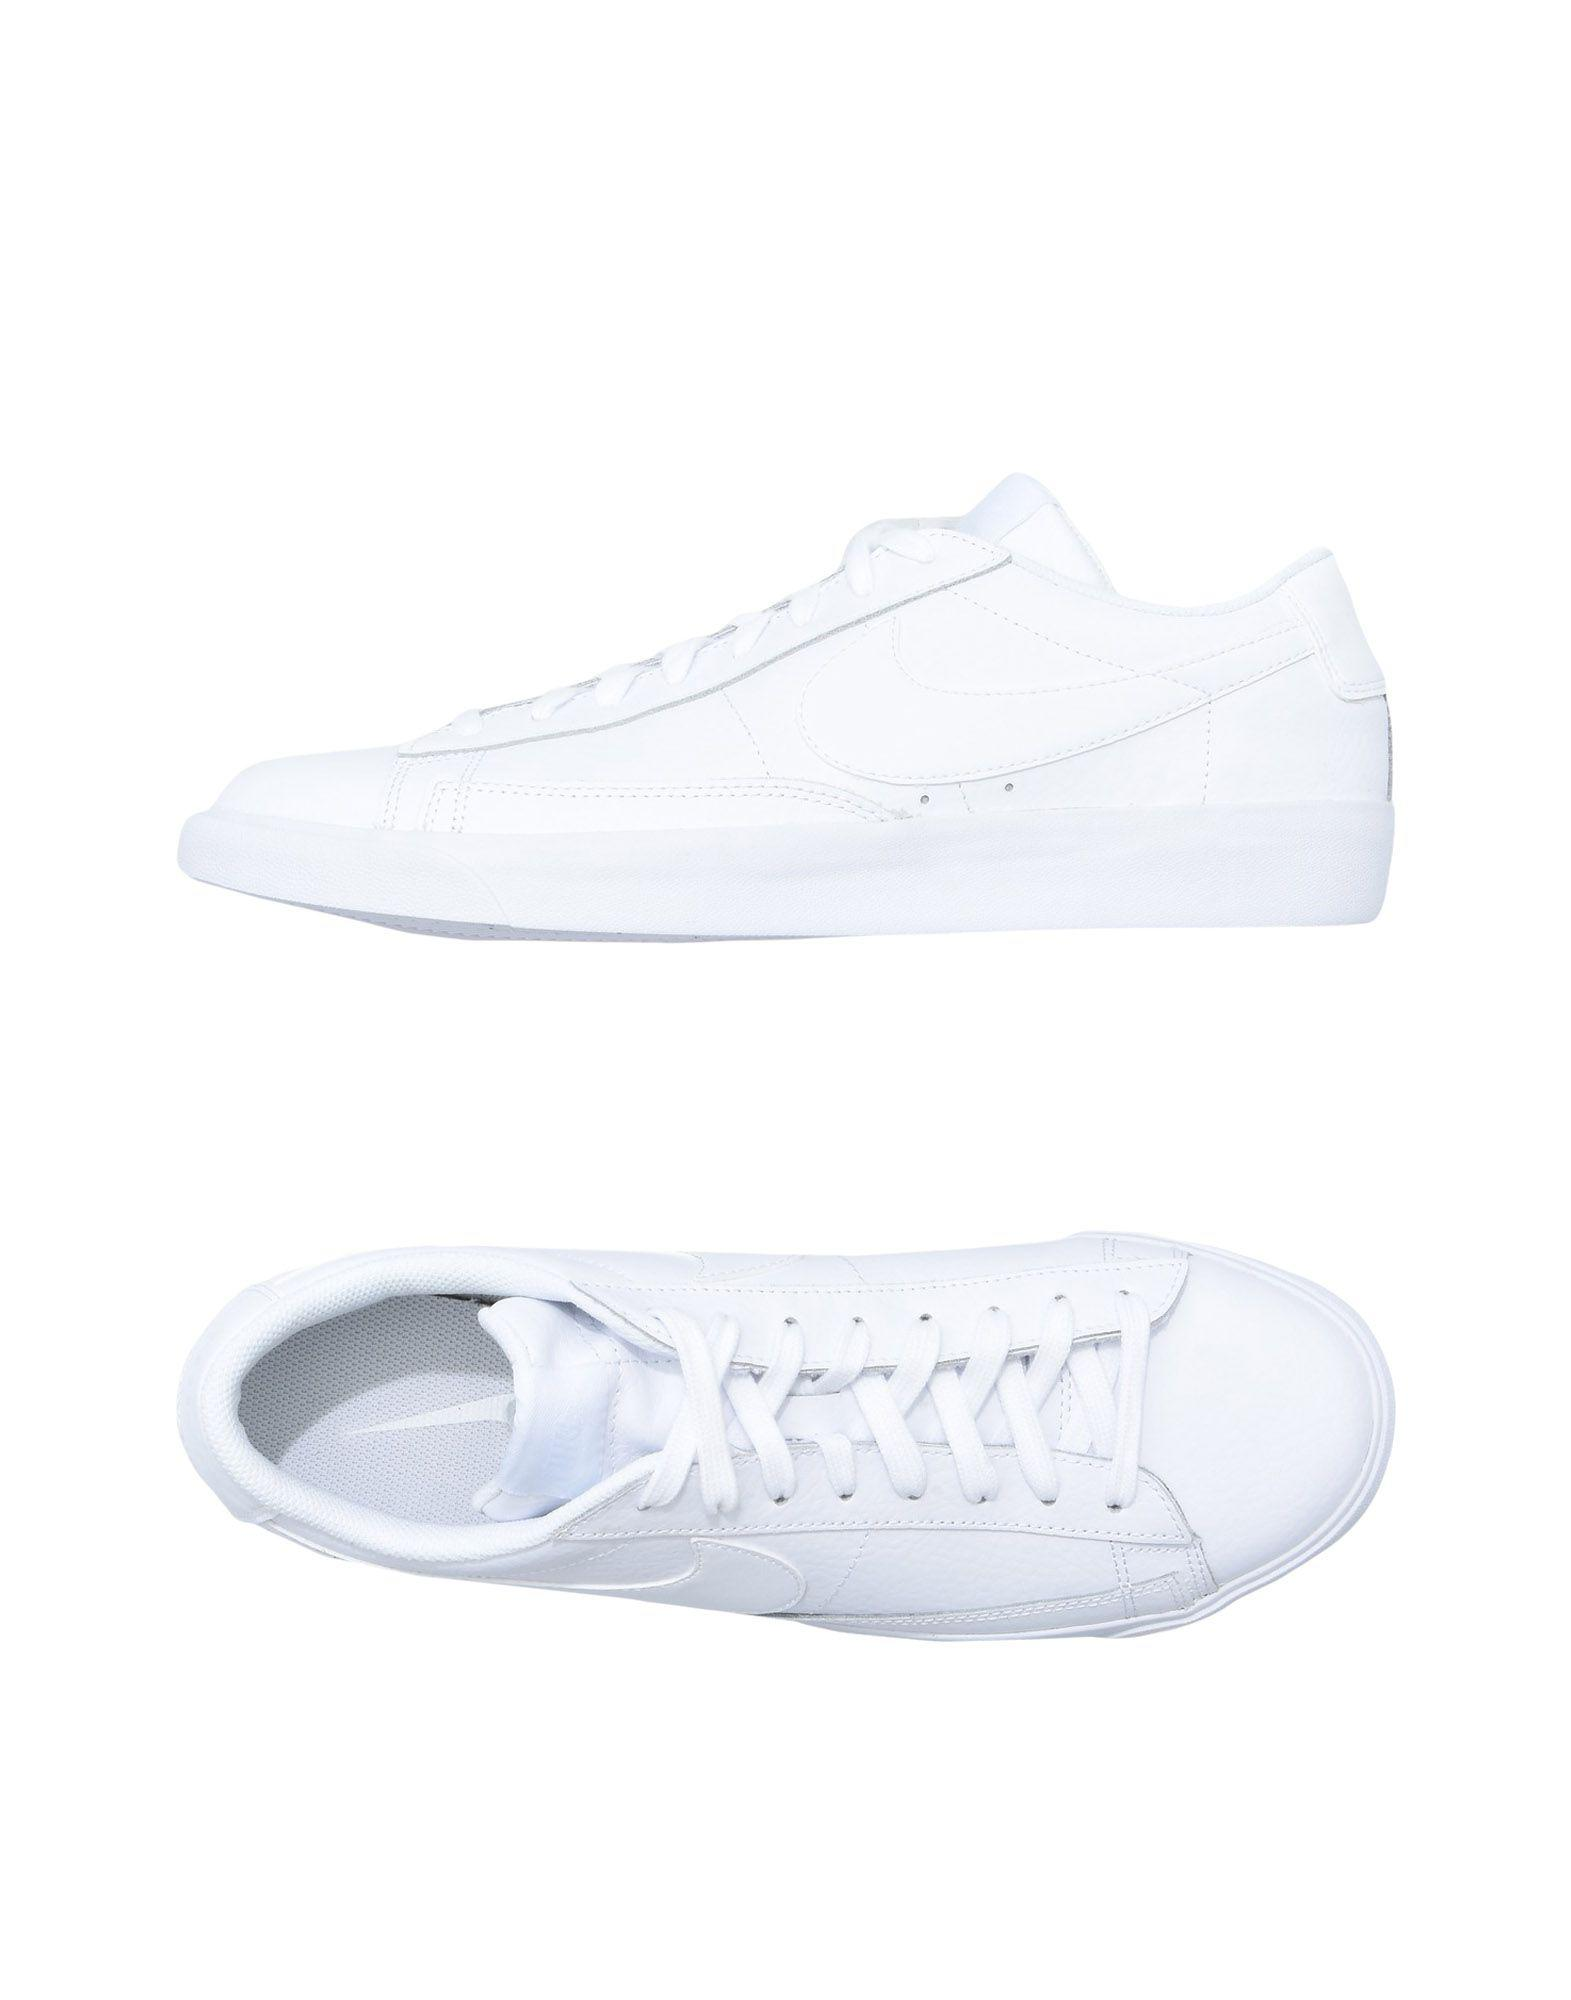 d894875975e2 Nike Low-tops   Sneakers in White for Men - Lyst